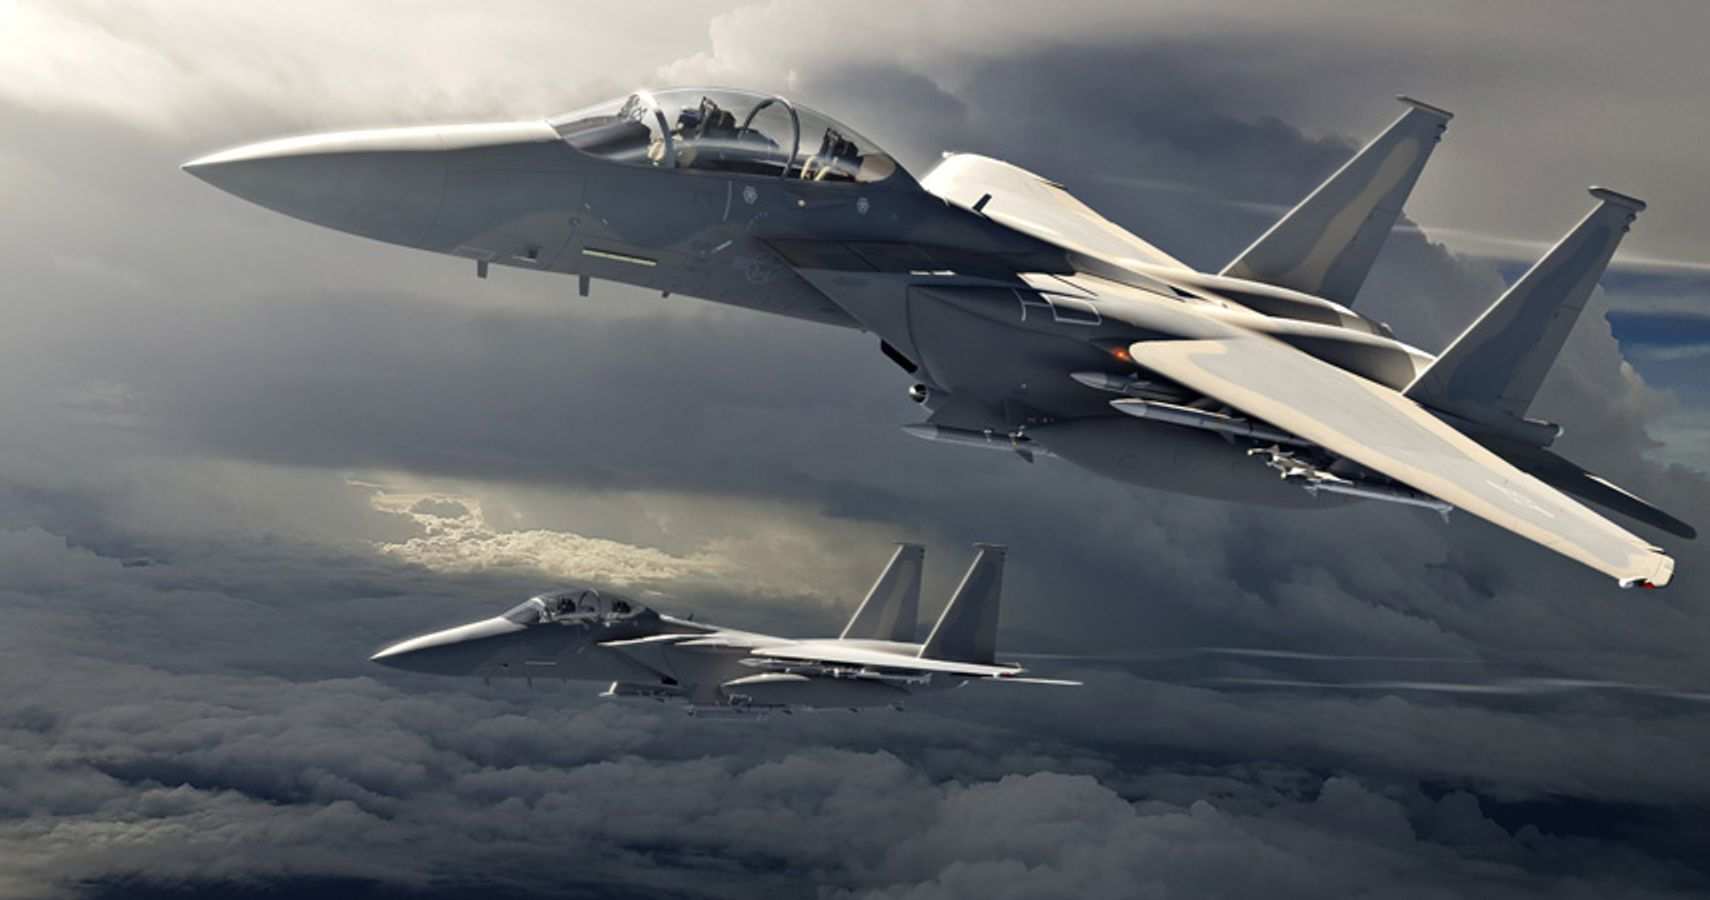 A Detailed Look At The U.S. Air Force's New F-15EX Fighter Jet